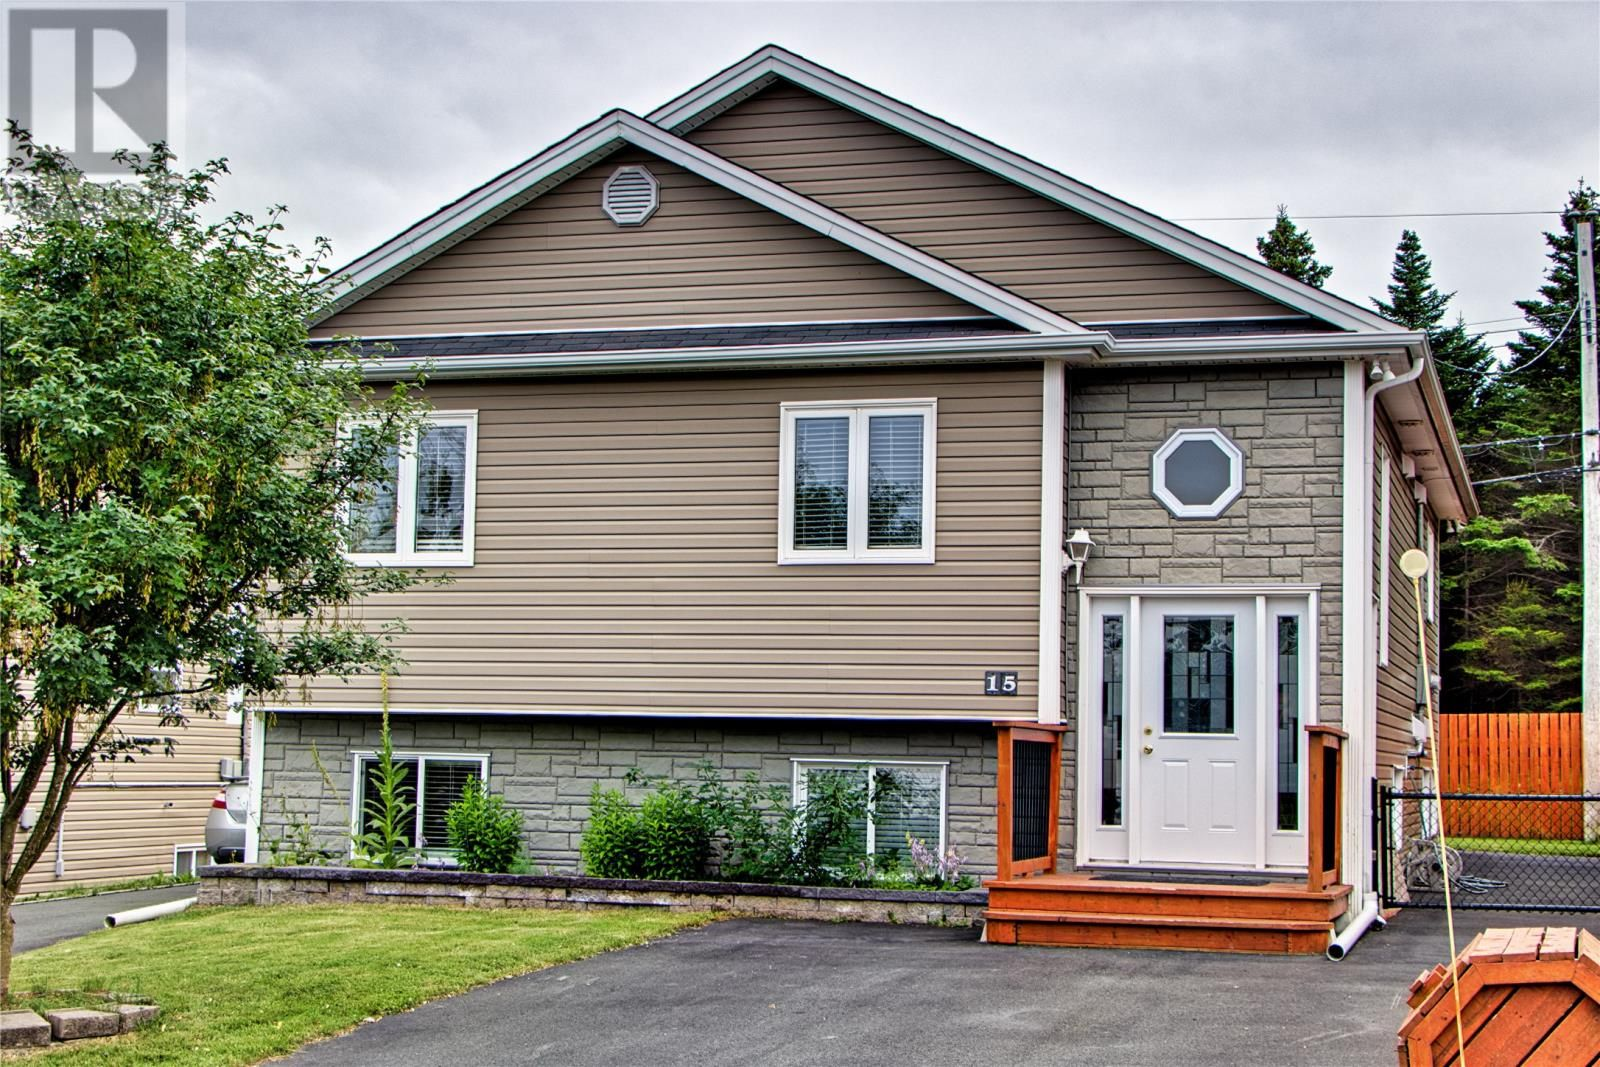 Main Photo: 15 Reddy Drive in Torbay: House for sale : MLS®# 1237224